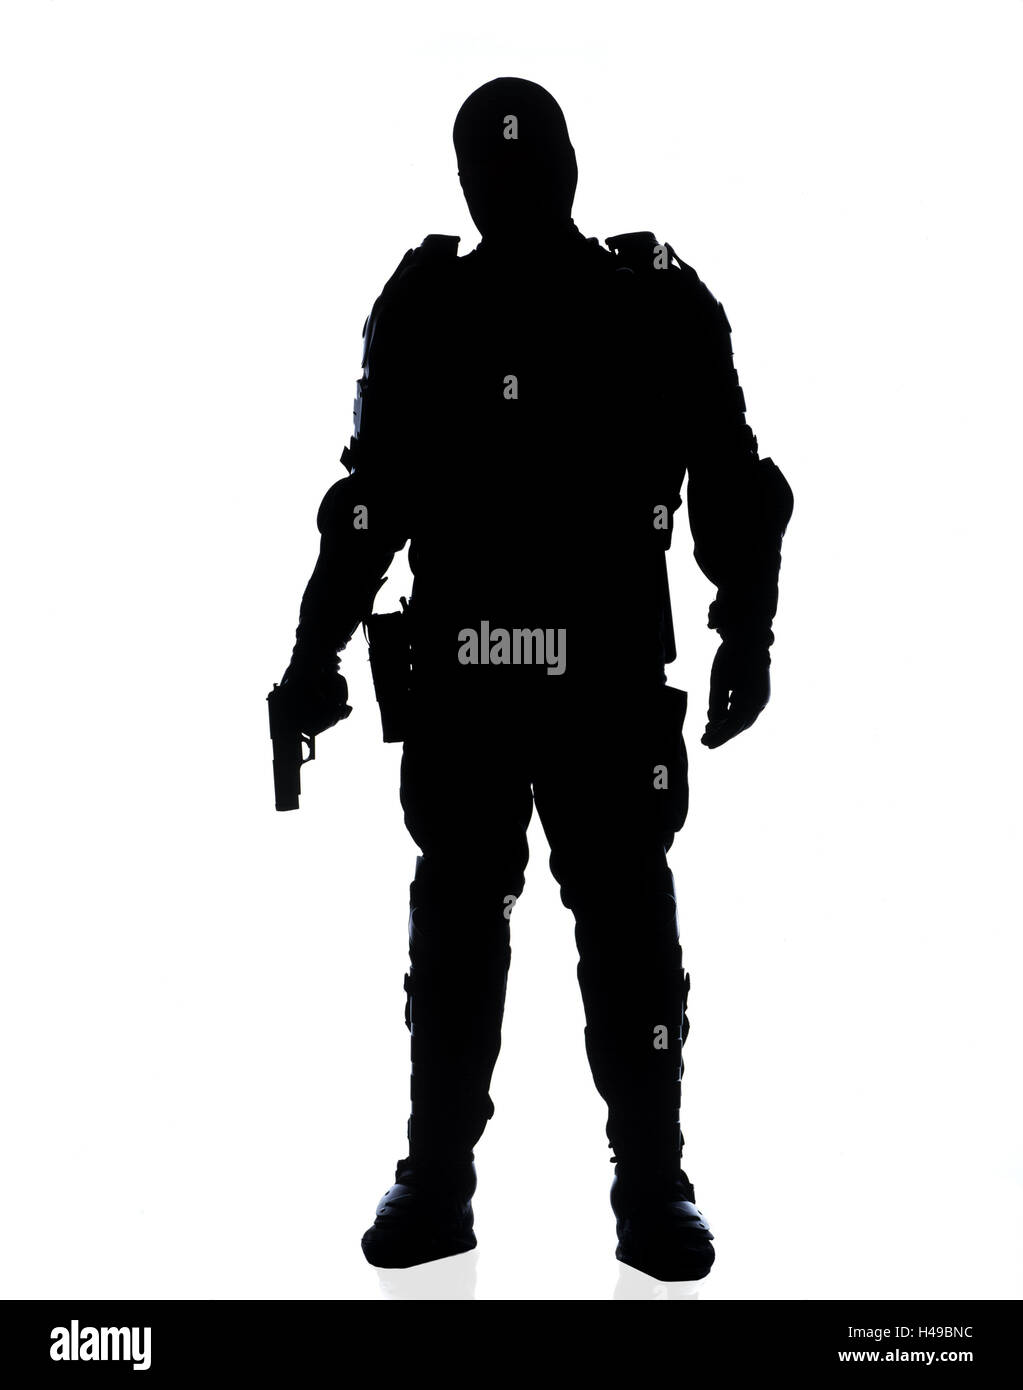 Policeman, protective clothing, stand, hold hand, gun, silhouette, police, occupation, man, official, police officer, - Stock Image